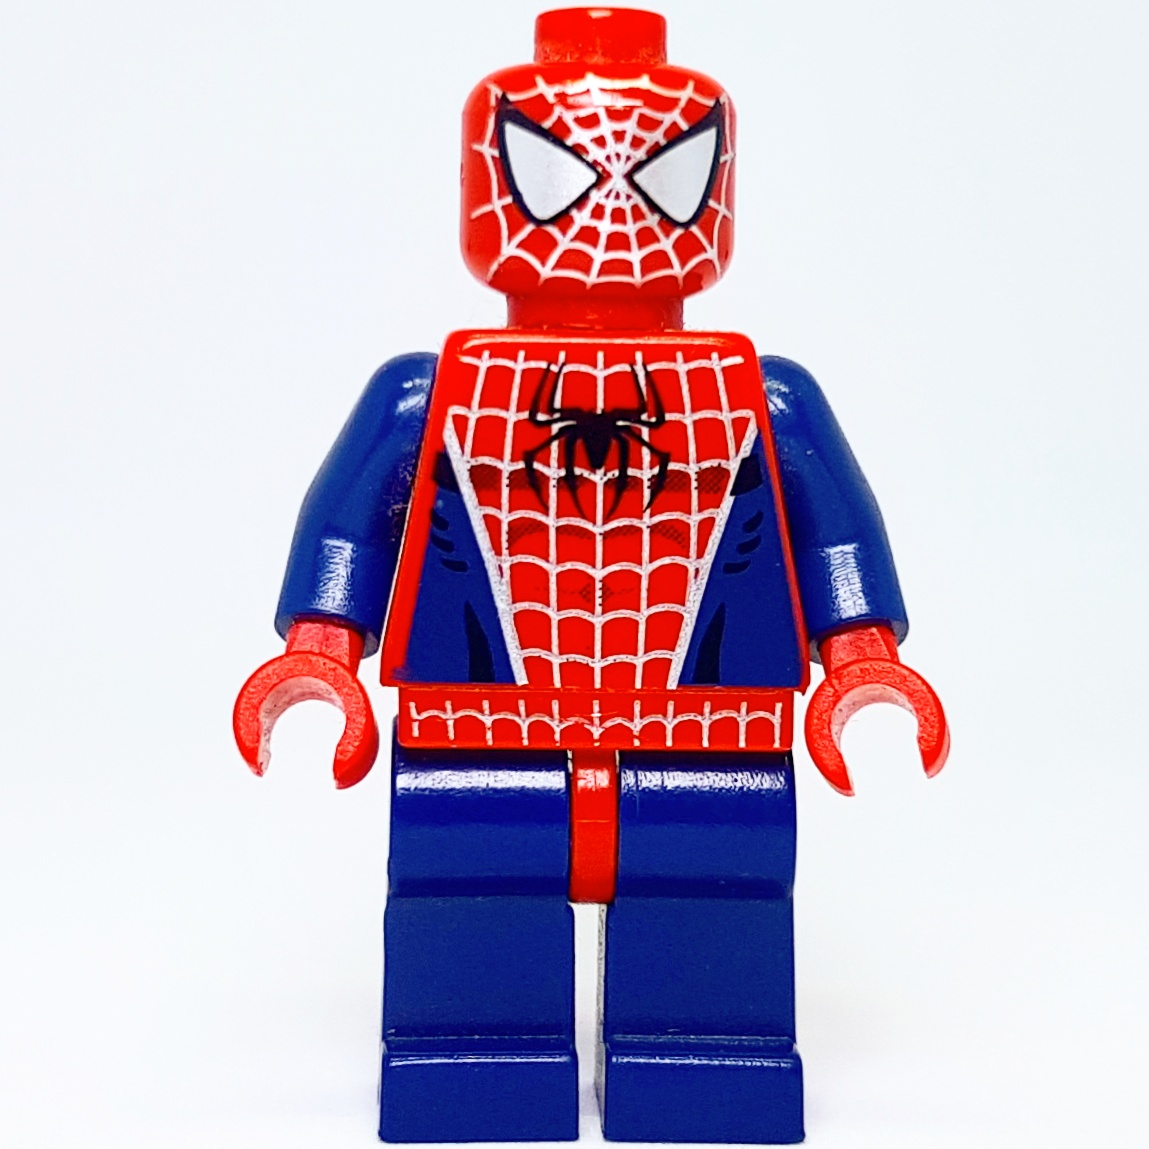 Spider Man Peter Parker In The Lego Incredibles Videogame: Lego 2002 Spiderman Movie - Spiderman Minifigure